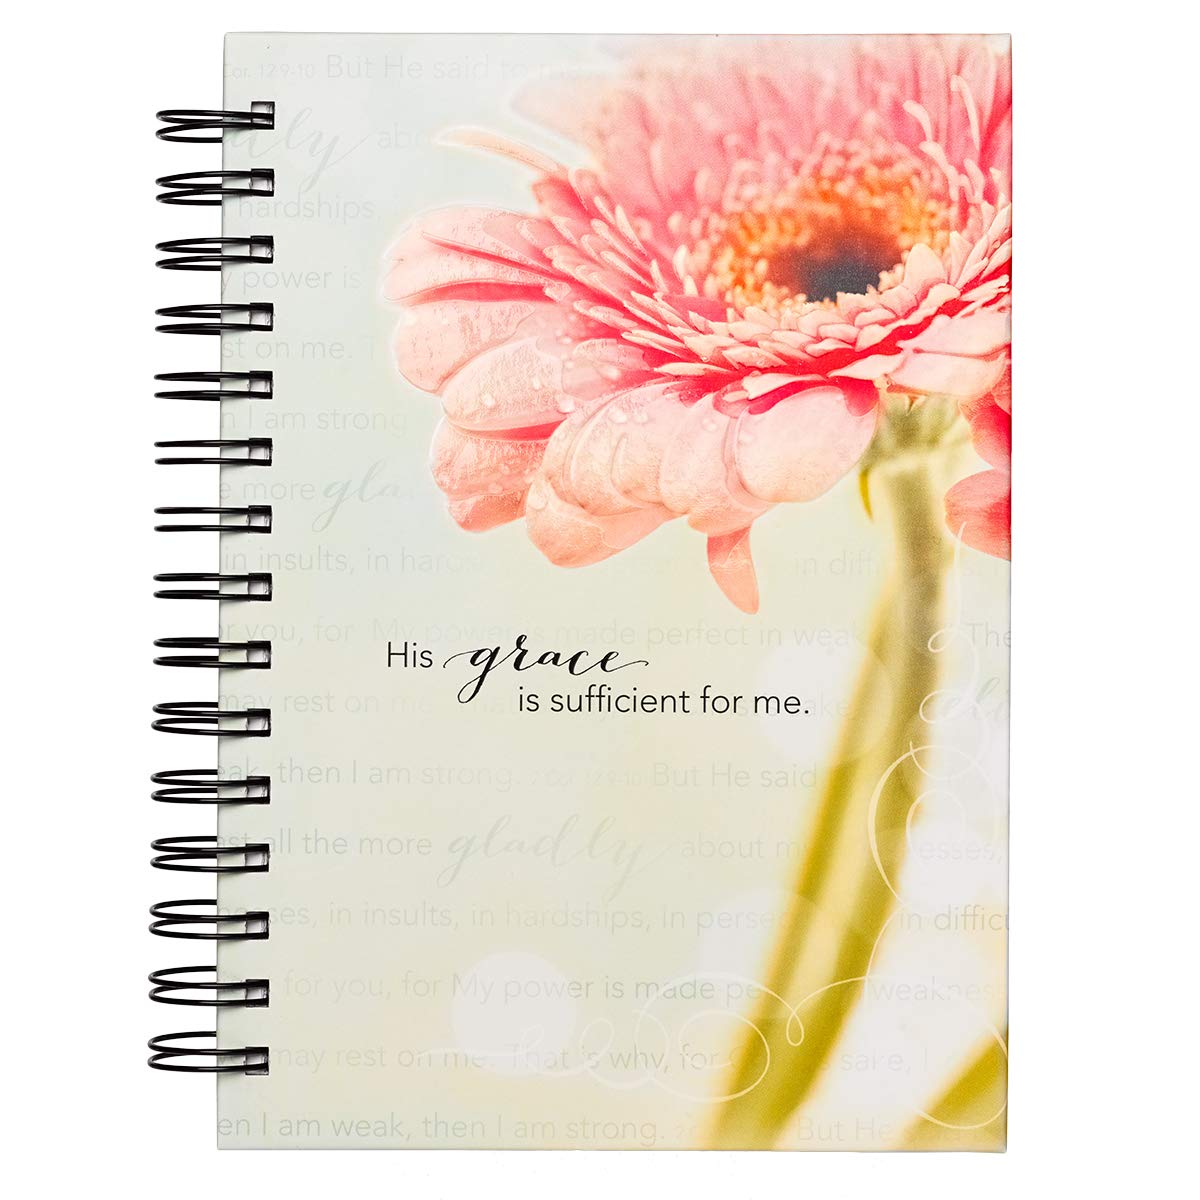 """Christian Art Gifts Large Hardcover Notebook/Journal   Grace is Sufficient – 2 Corinthians 12:9-11 Bible Verse  Pink Daisy Inspirational Wire Bound Spiral Notebook w/192 Lined Pages, 6"""" x 8.25"""""""